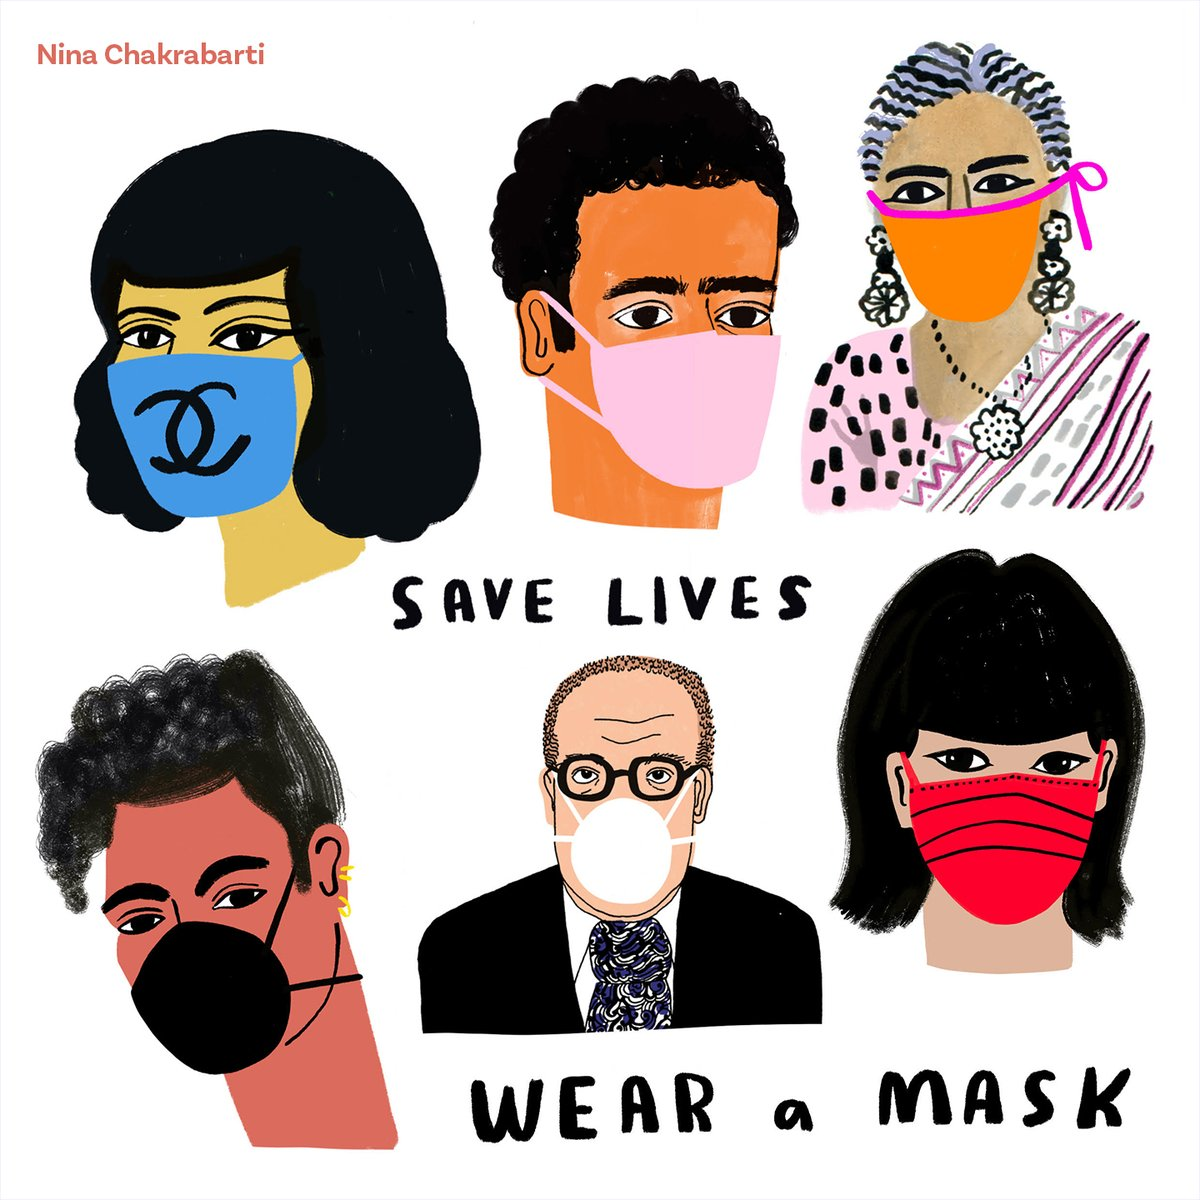 Andrew Cuomo On Twitter Wear A Mask In Public When You Can T Maintain Social Distancing Warm Weather Doesn T Mean The Rules No Longer Apply Do It To Protect The People Around You